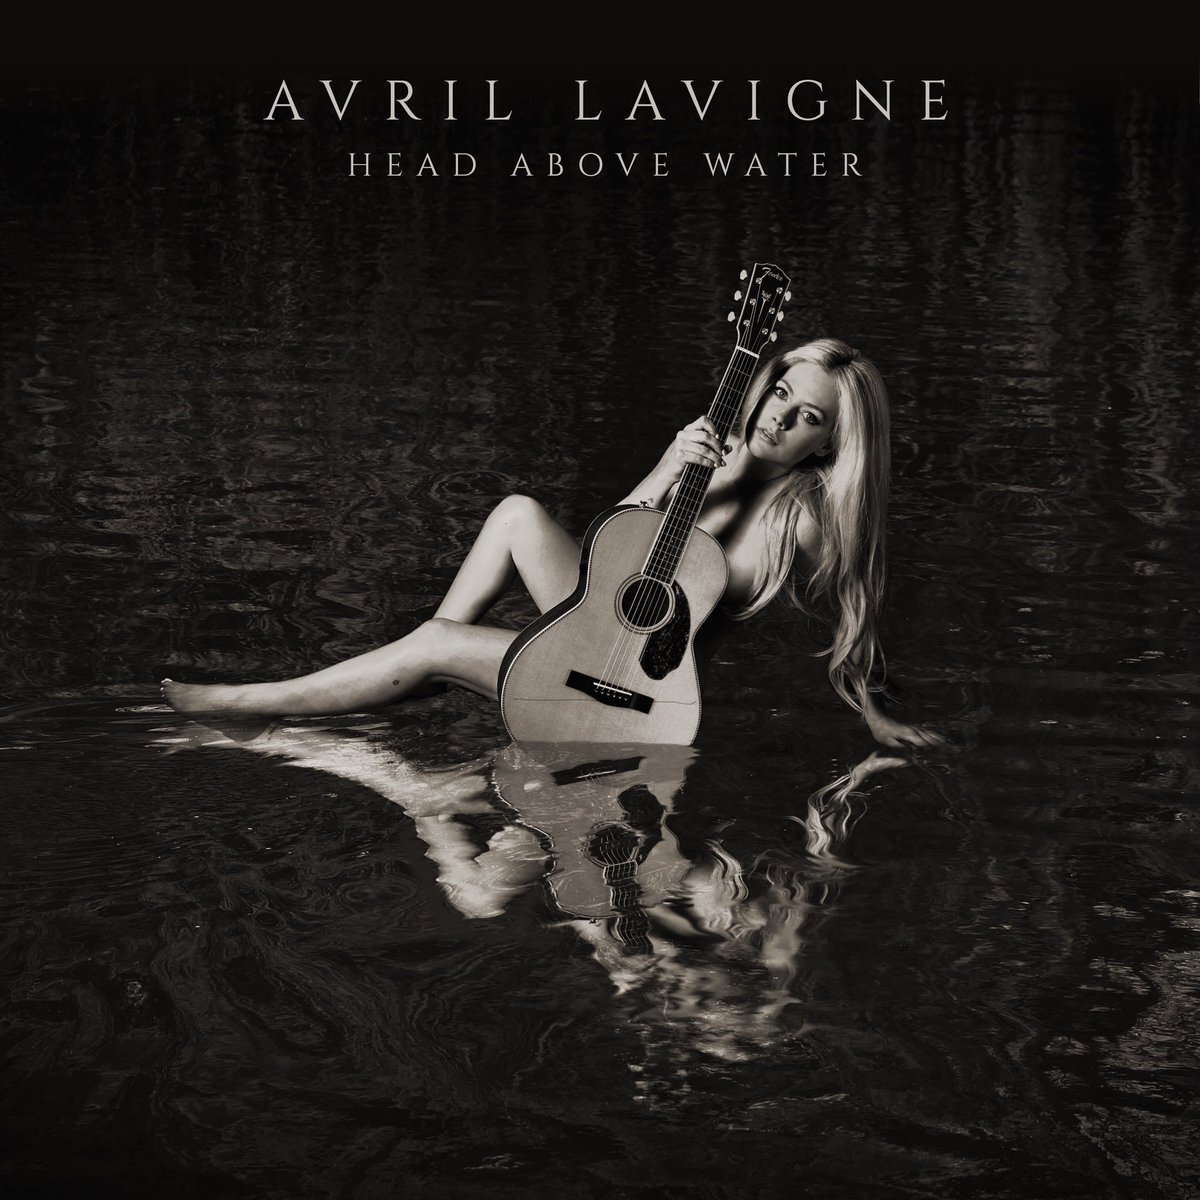 My new album, #HeadAboveWater, is available for pre-order on December 12. https://t.co/5wLpdXE06T